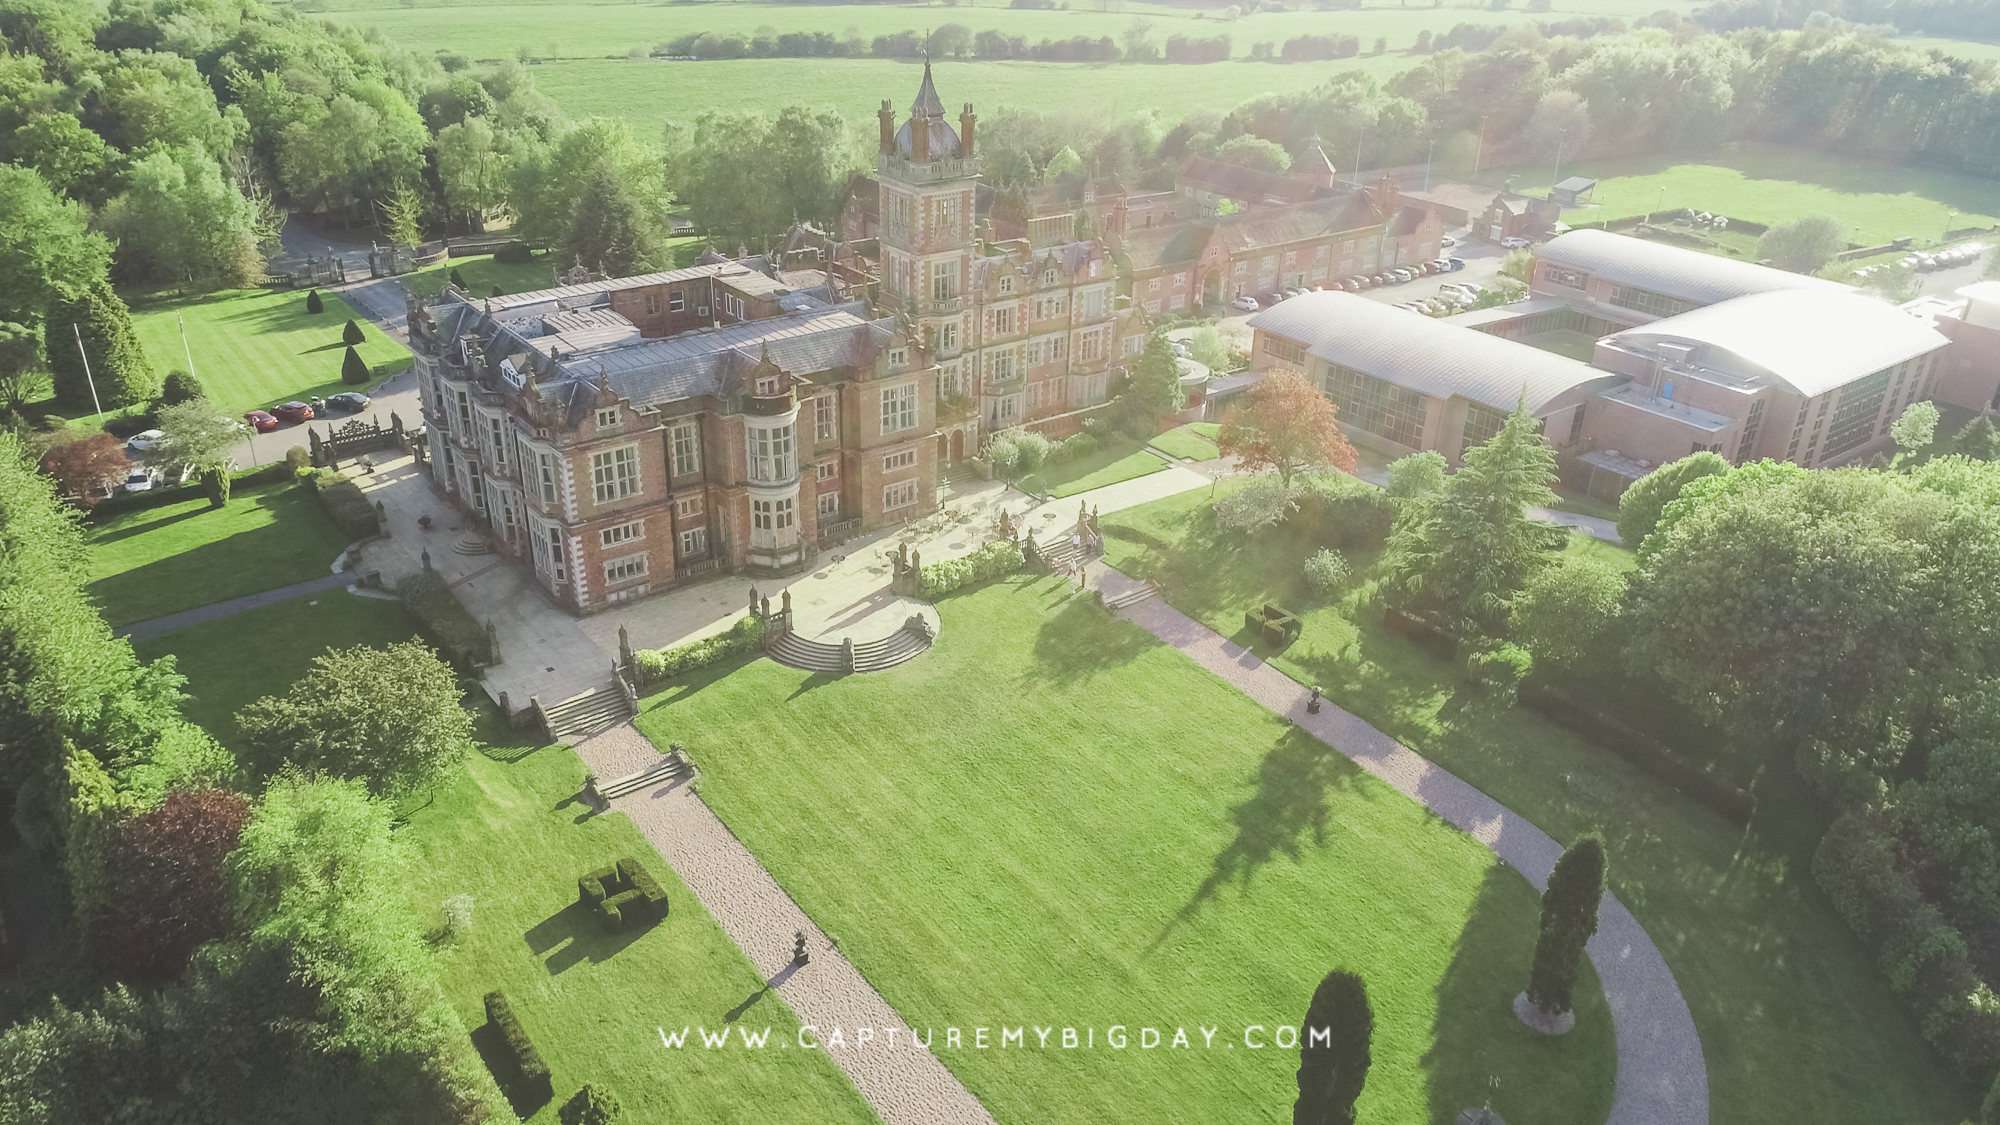 Drone image of Crewe Hall